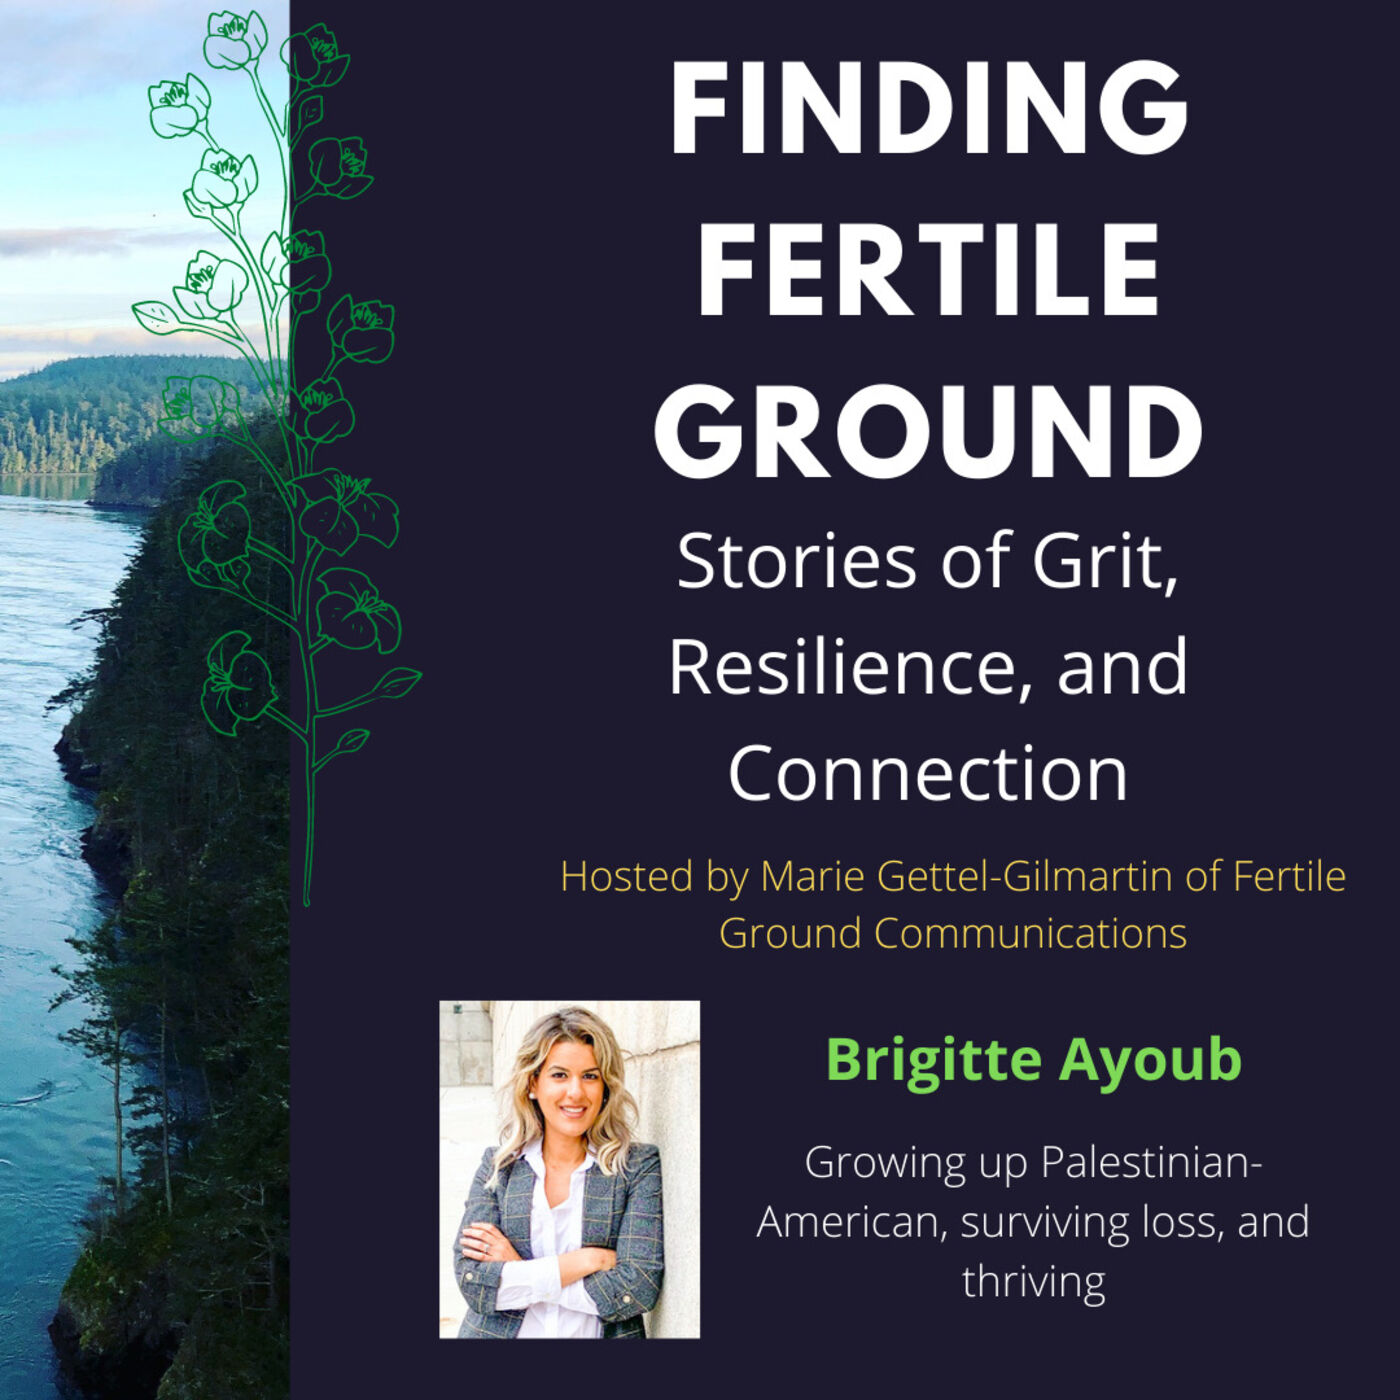 Brigitte Ayoub: Growing up Palestinian-American, surviving loss, and thriving